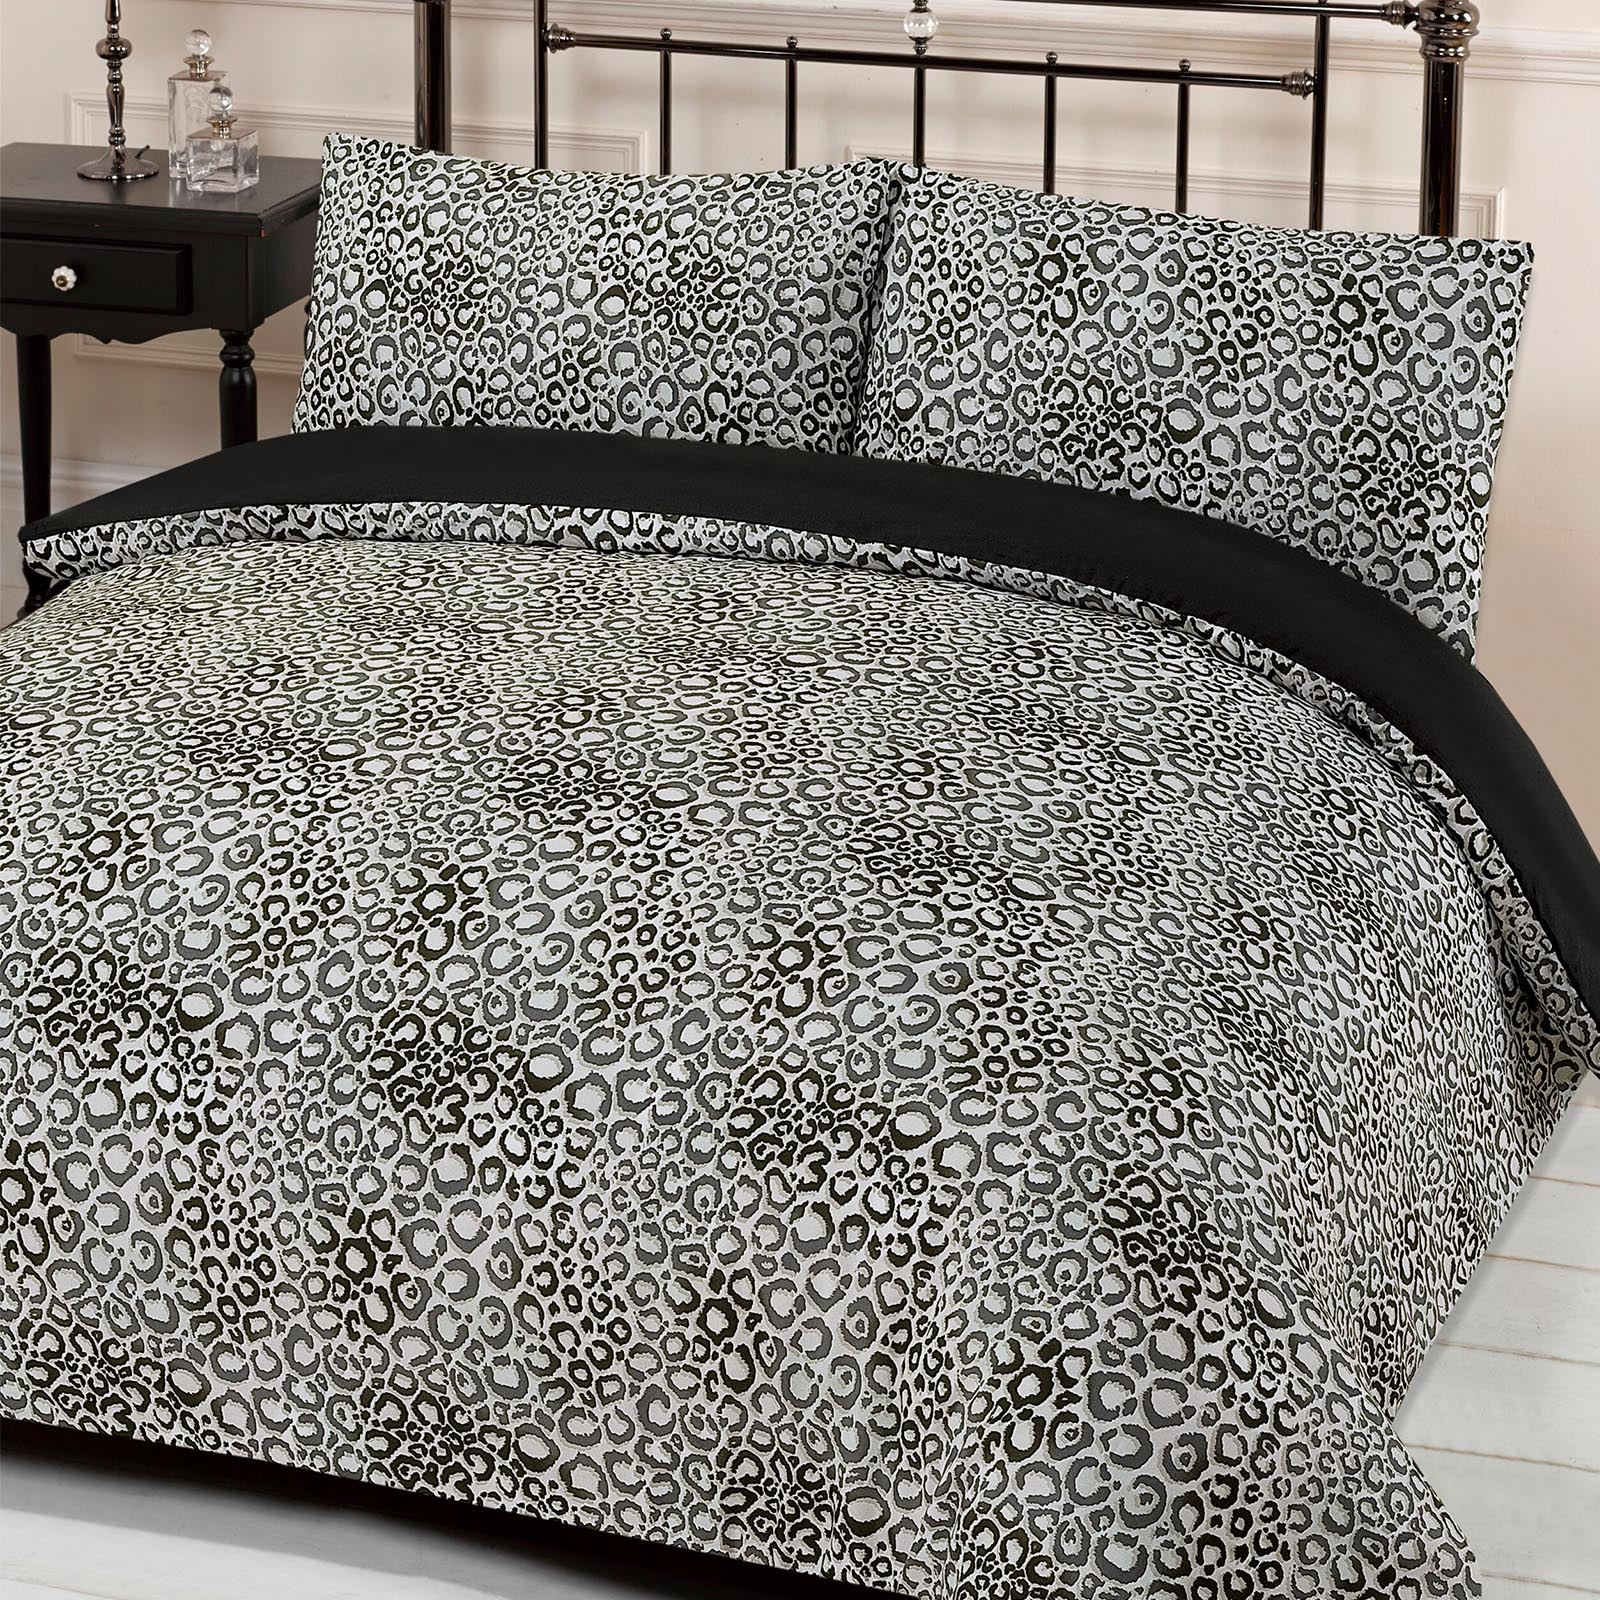 Delightful Leopard Print Quilt Cover With Pillowcase Duvet Bedding